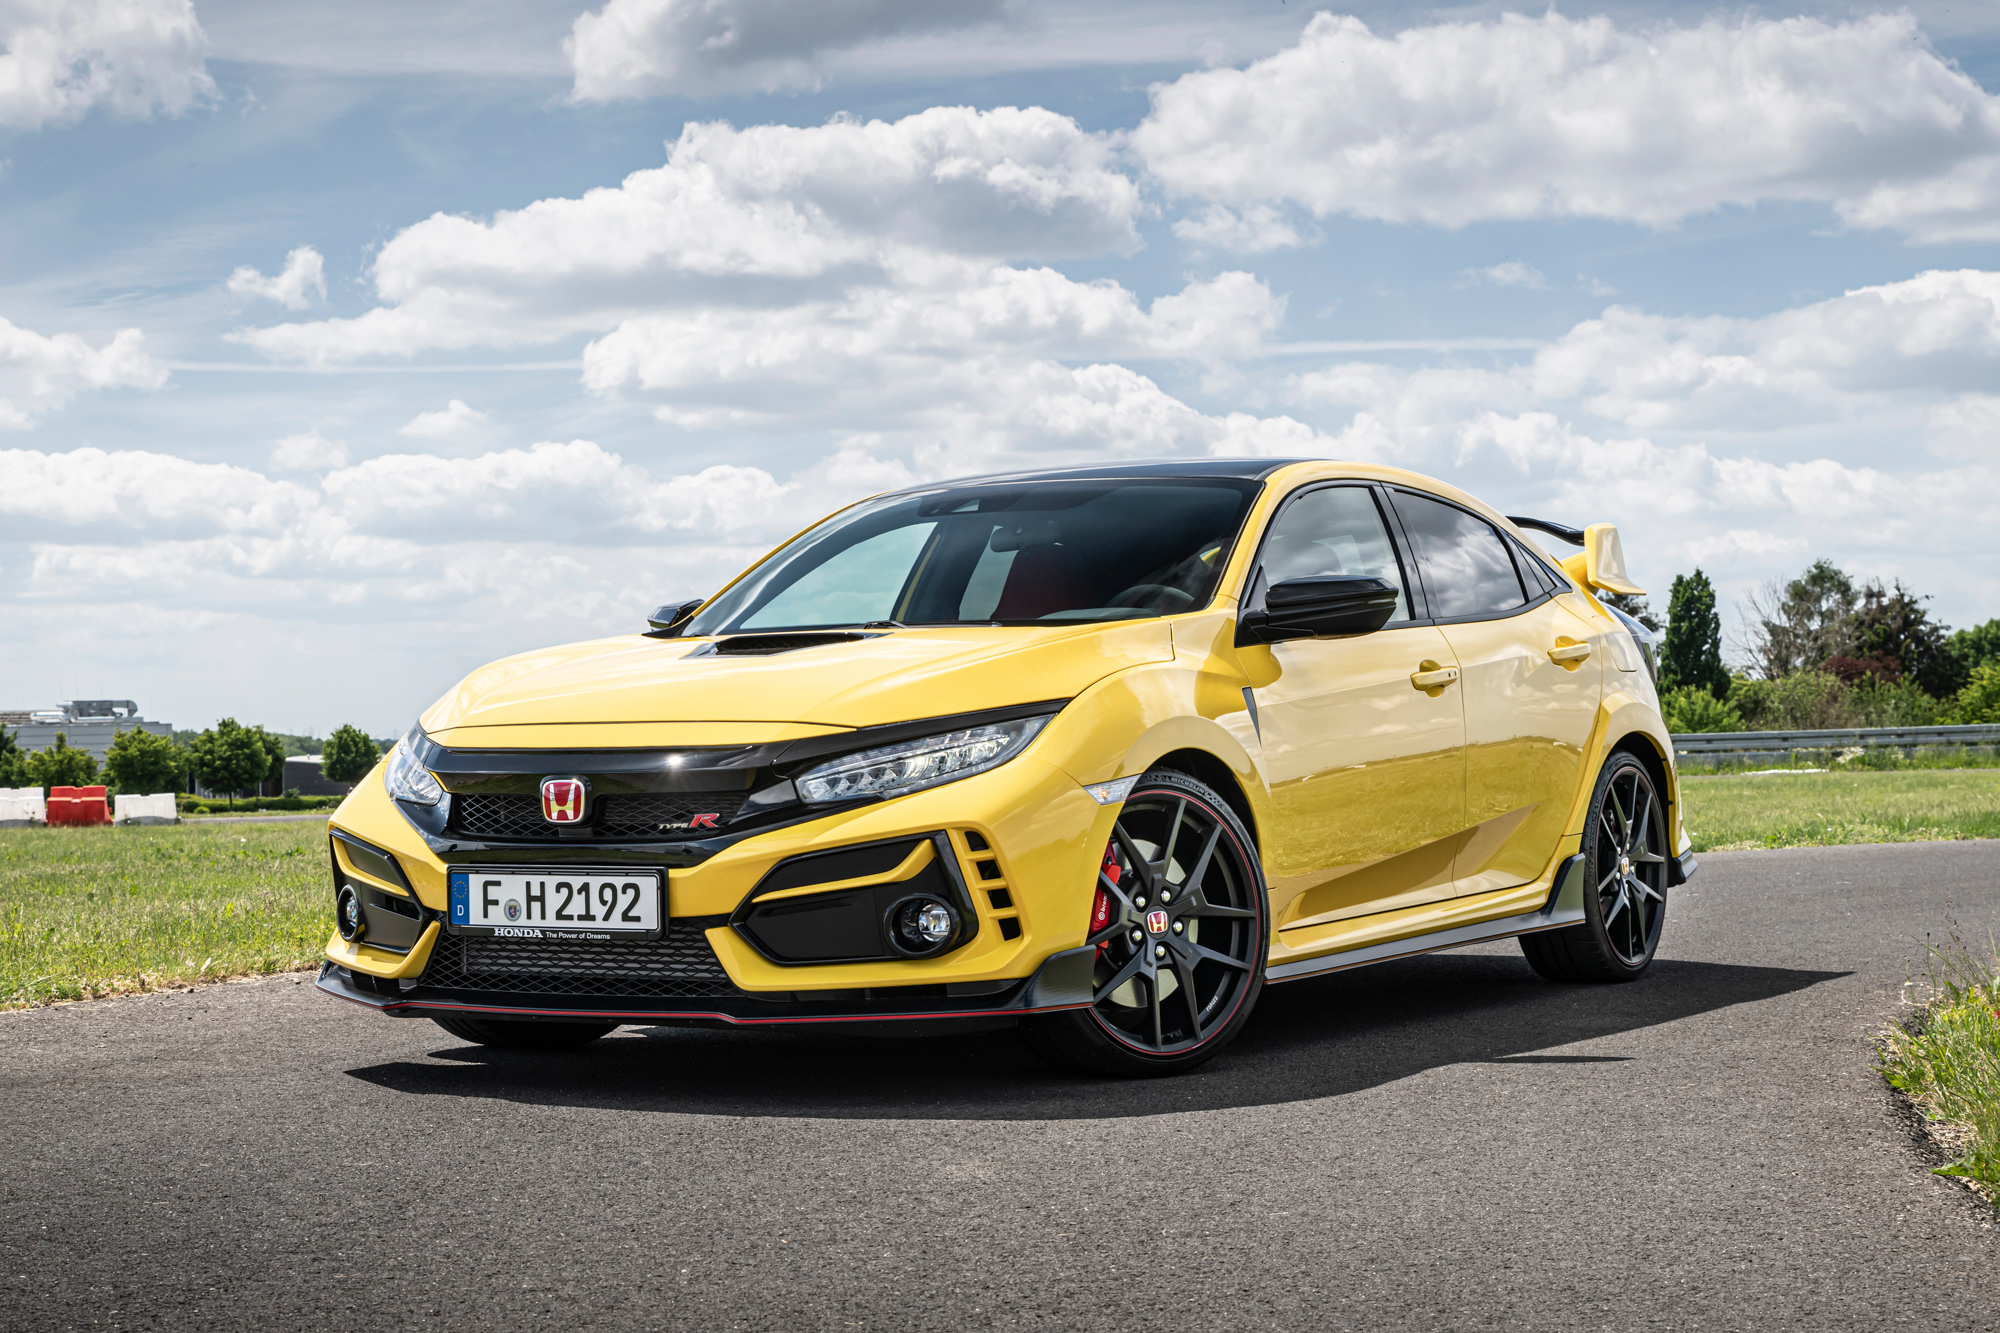 hondacivictyper2021limited-cafeautovn-1